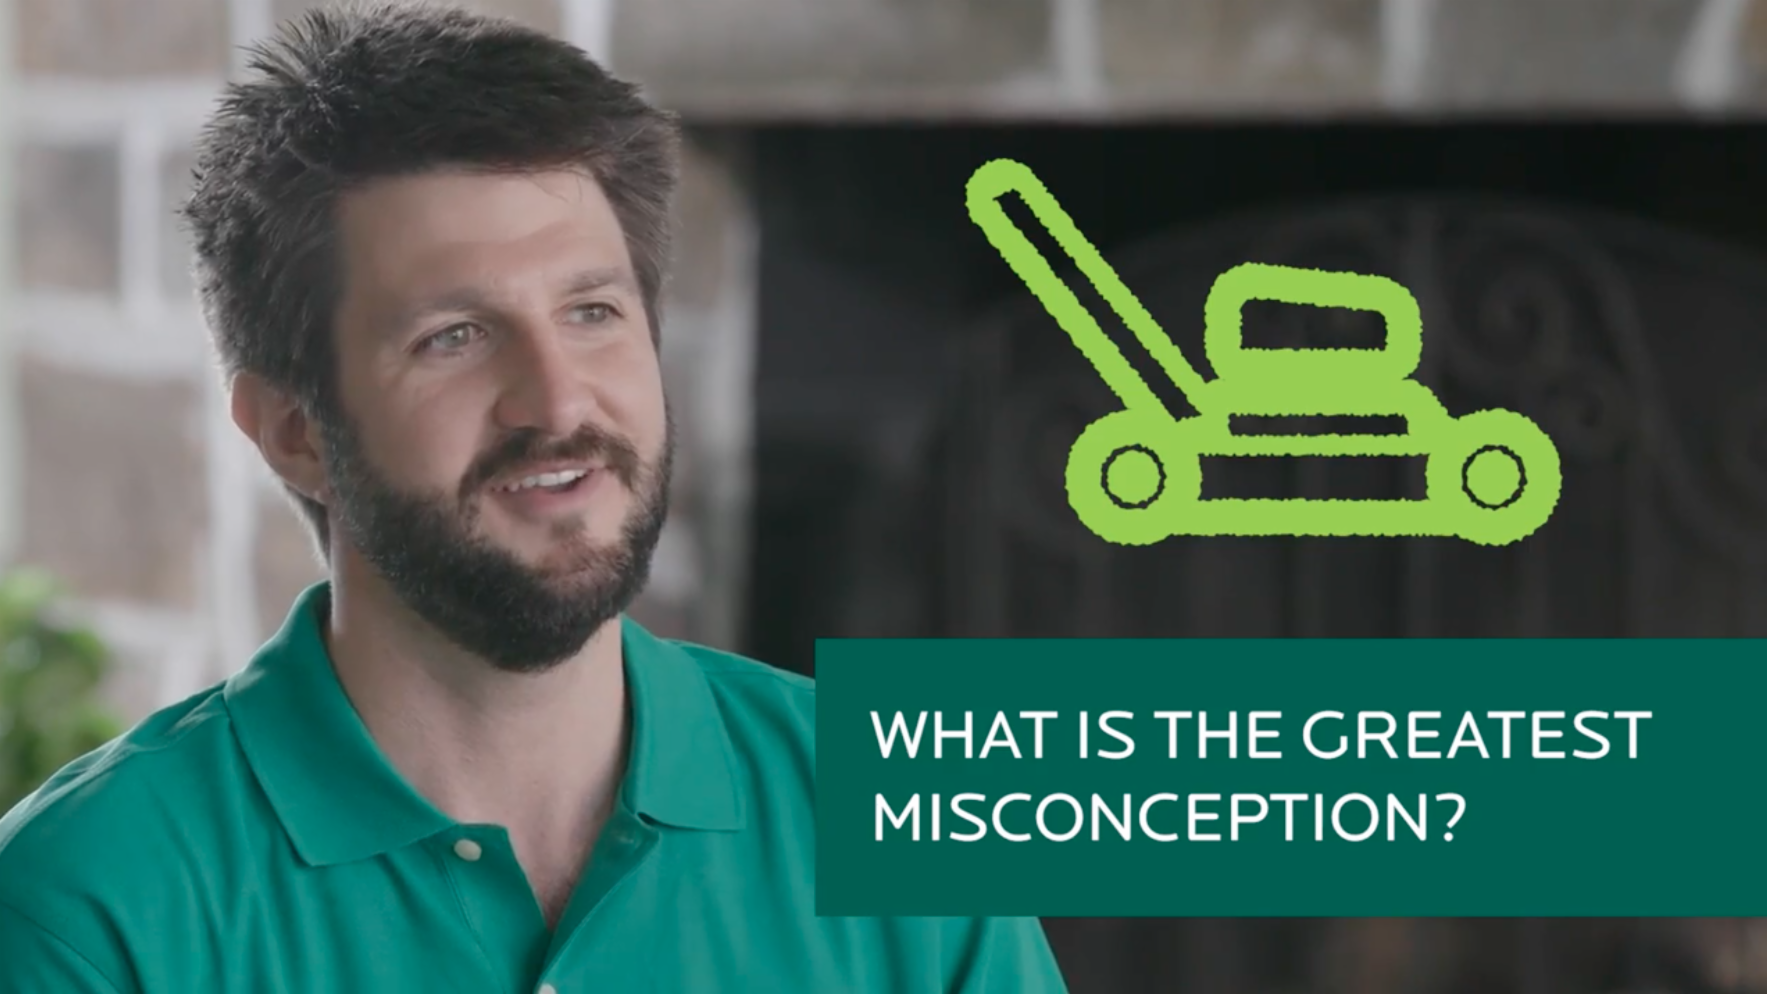 What is the Greatest Misconception about Landscaping? - Landscape Career Videos